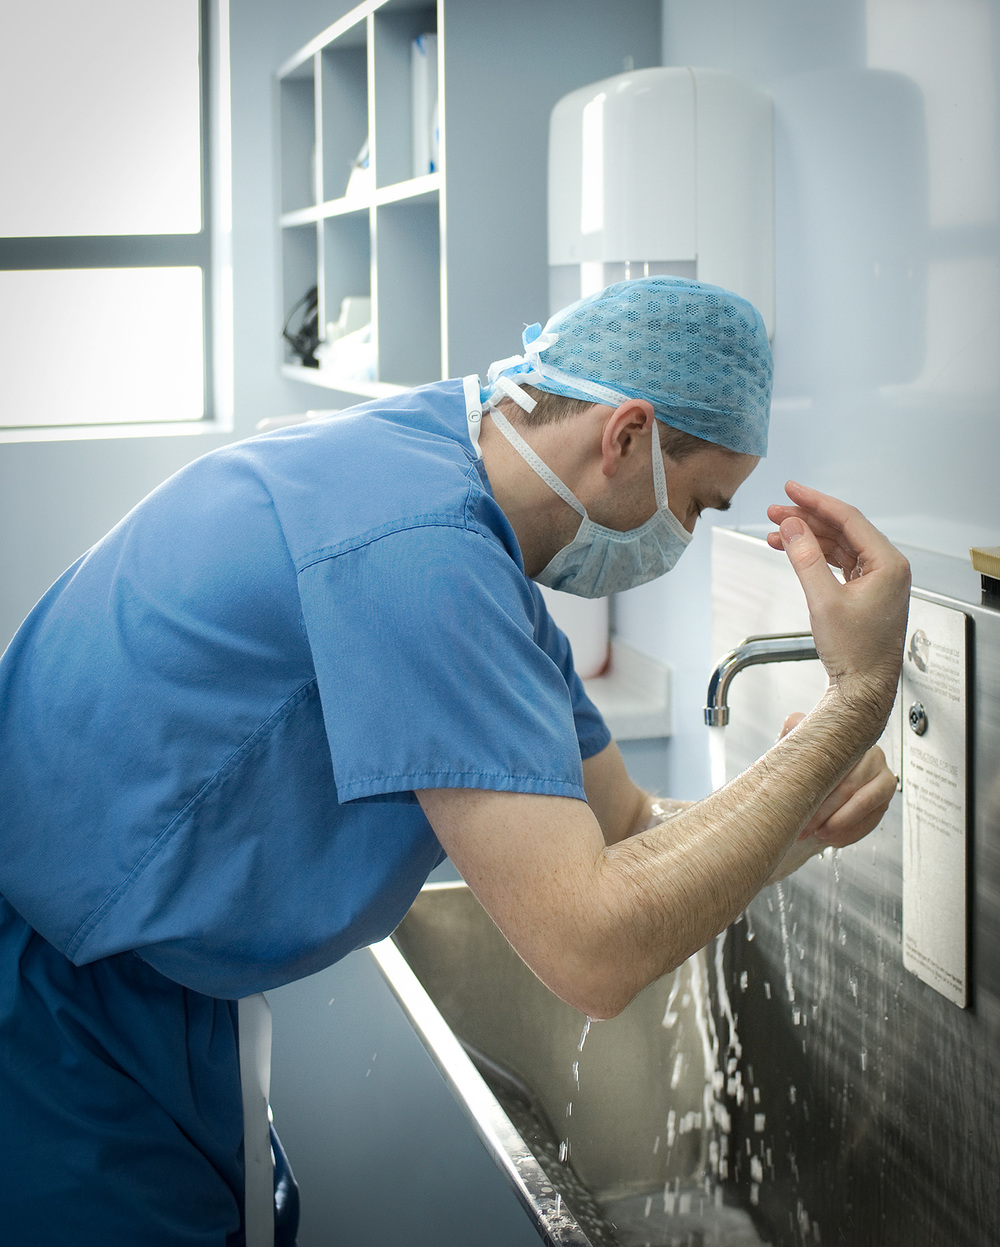 Scrubbing-up-for-surgery-1.jpg